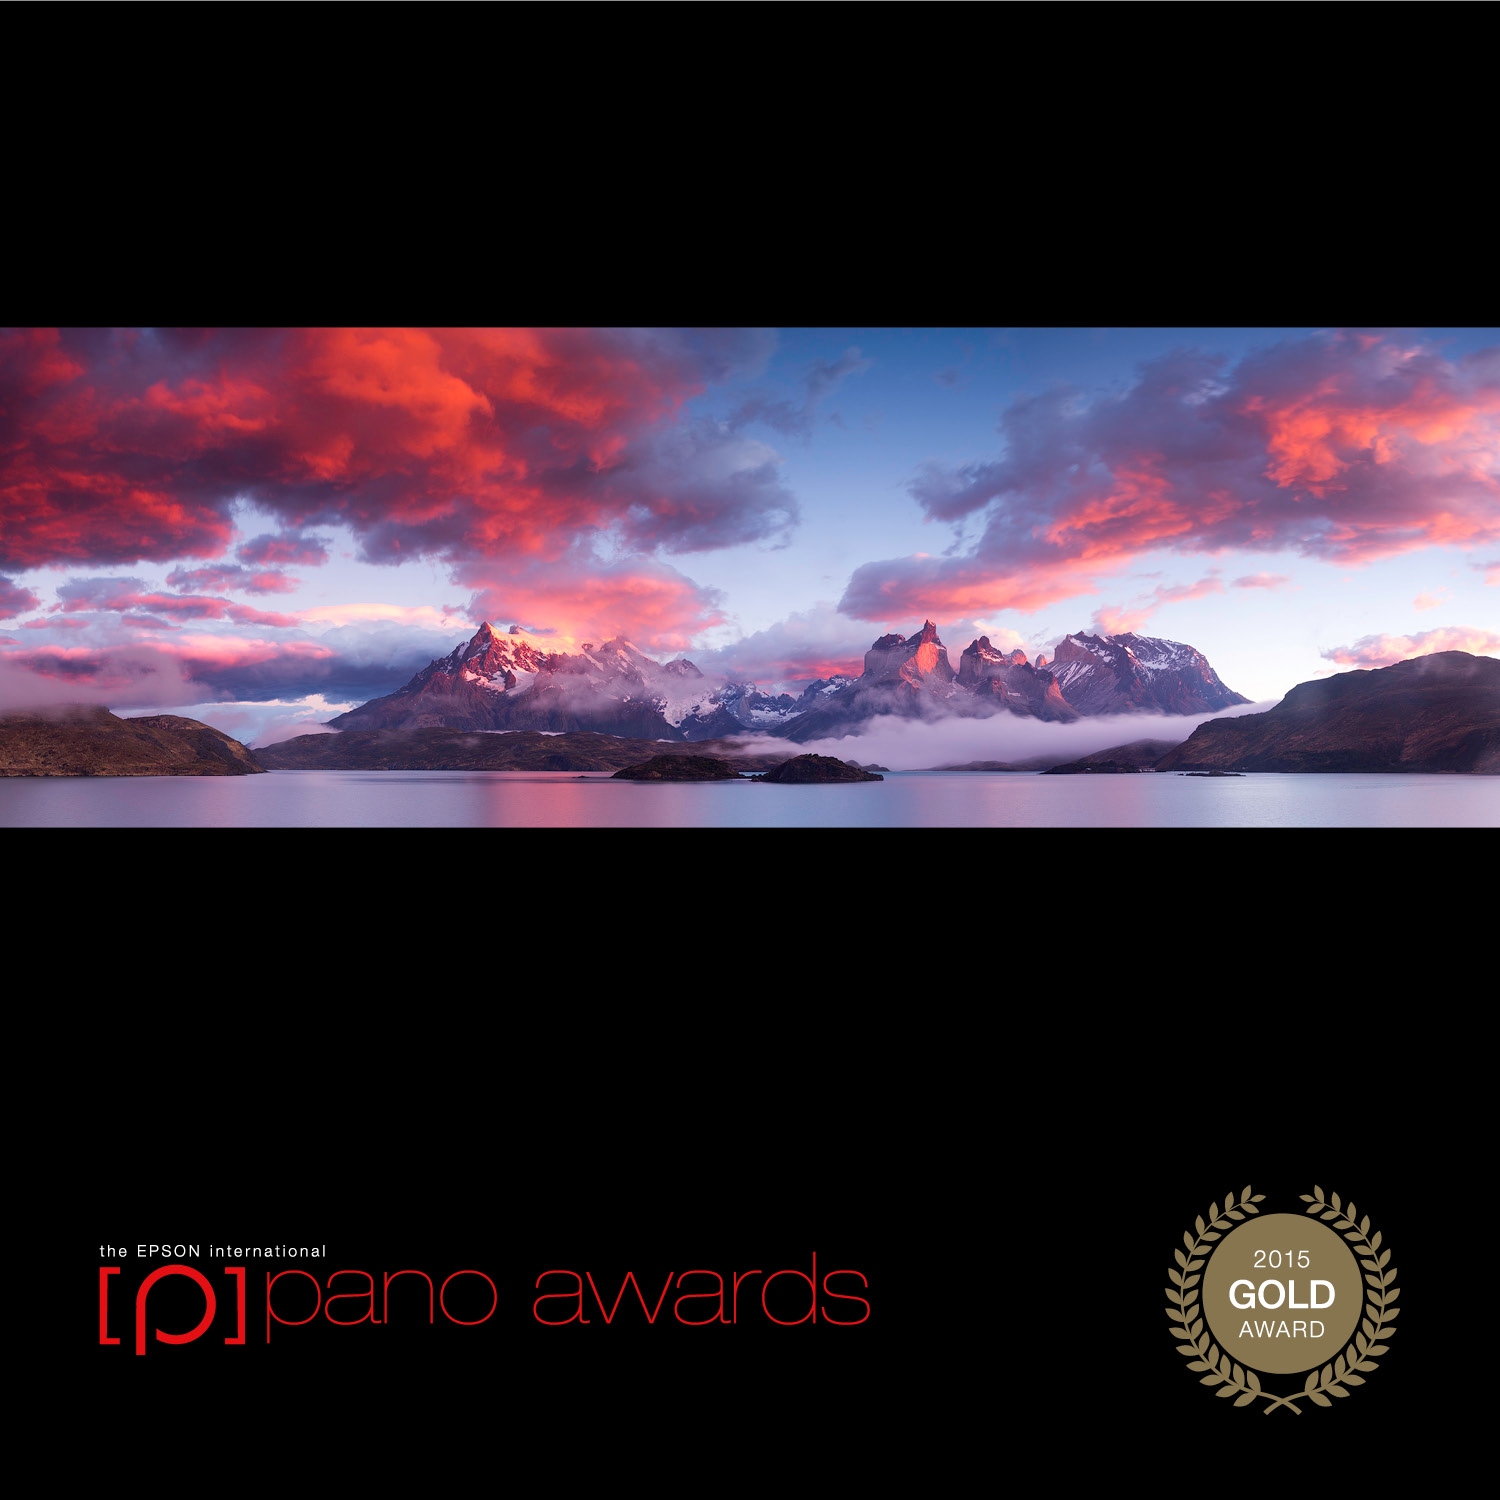 """Pehoe Fire""... 2015 the EPSON International Pano Awards - Top 10 - 6th out of 1,635 Entrants."